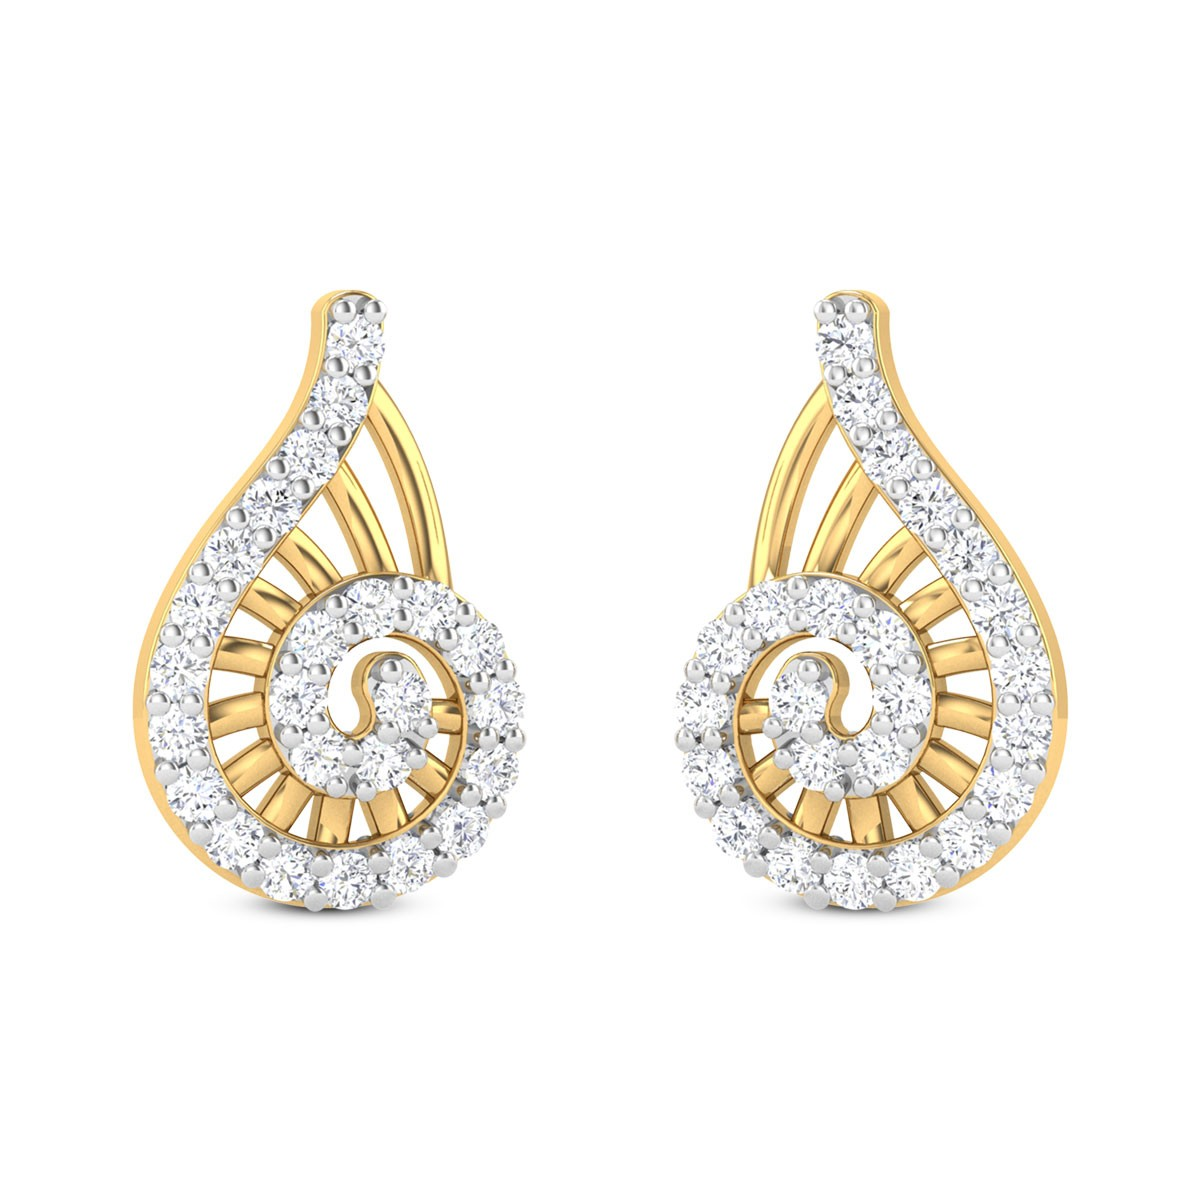 Asya Diamond Earrings